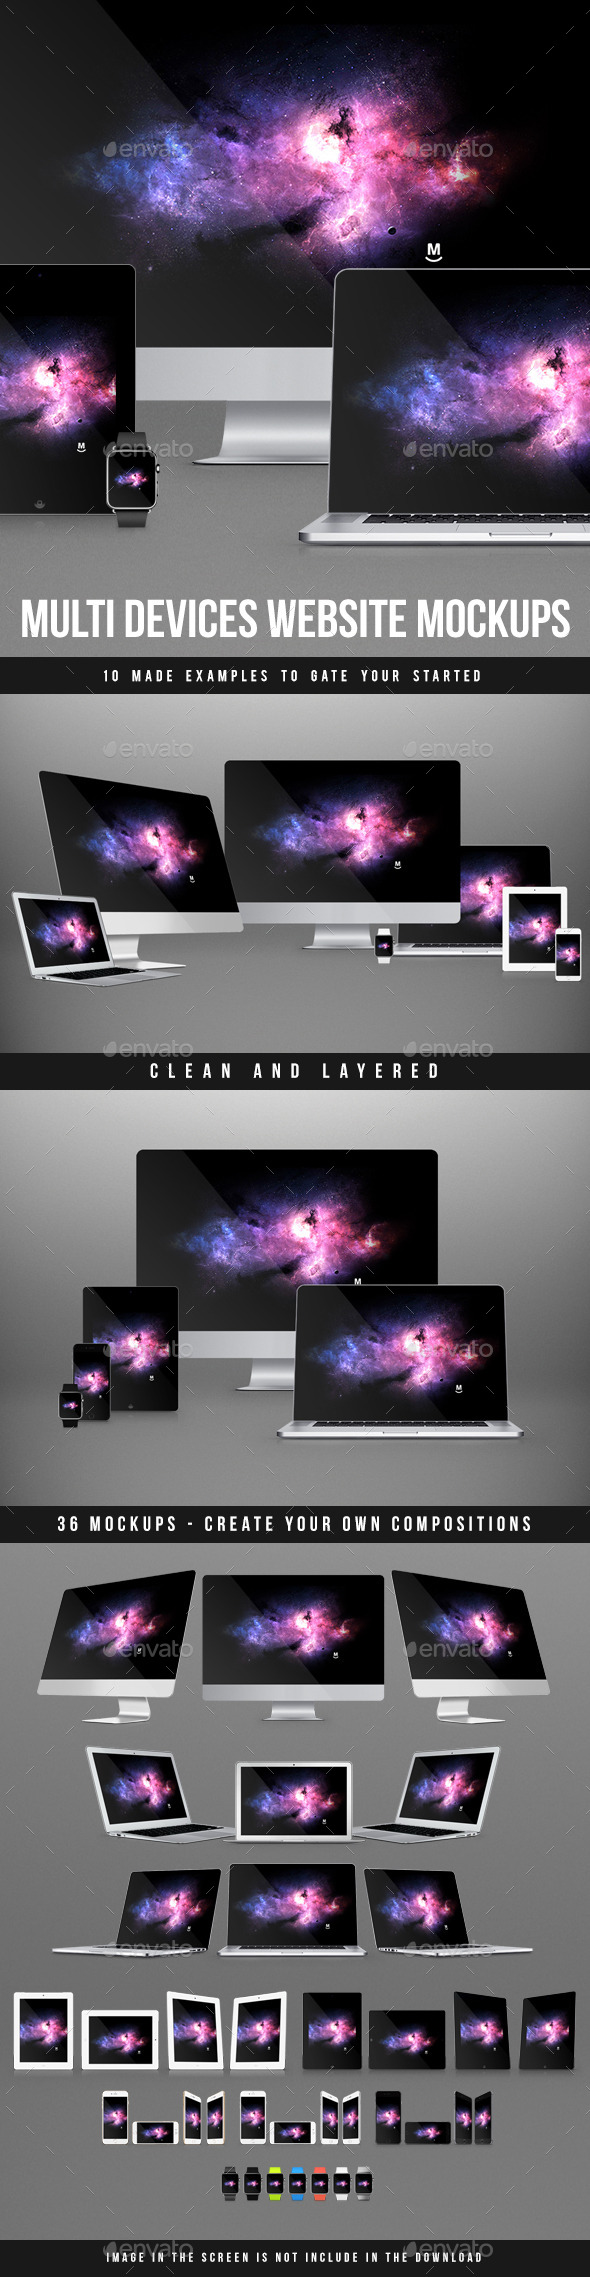 Multi Devices Website Mockups - Multiple Displays